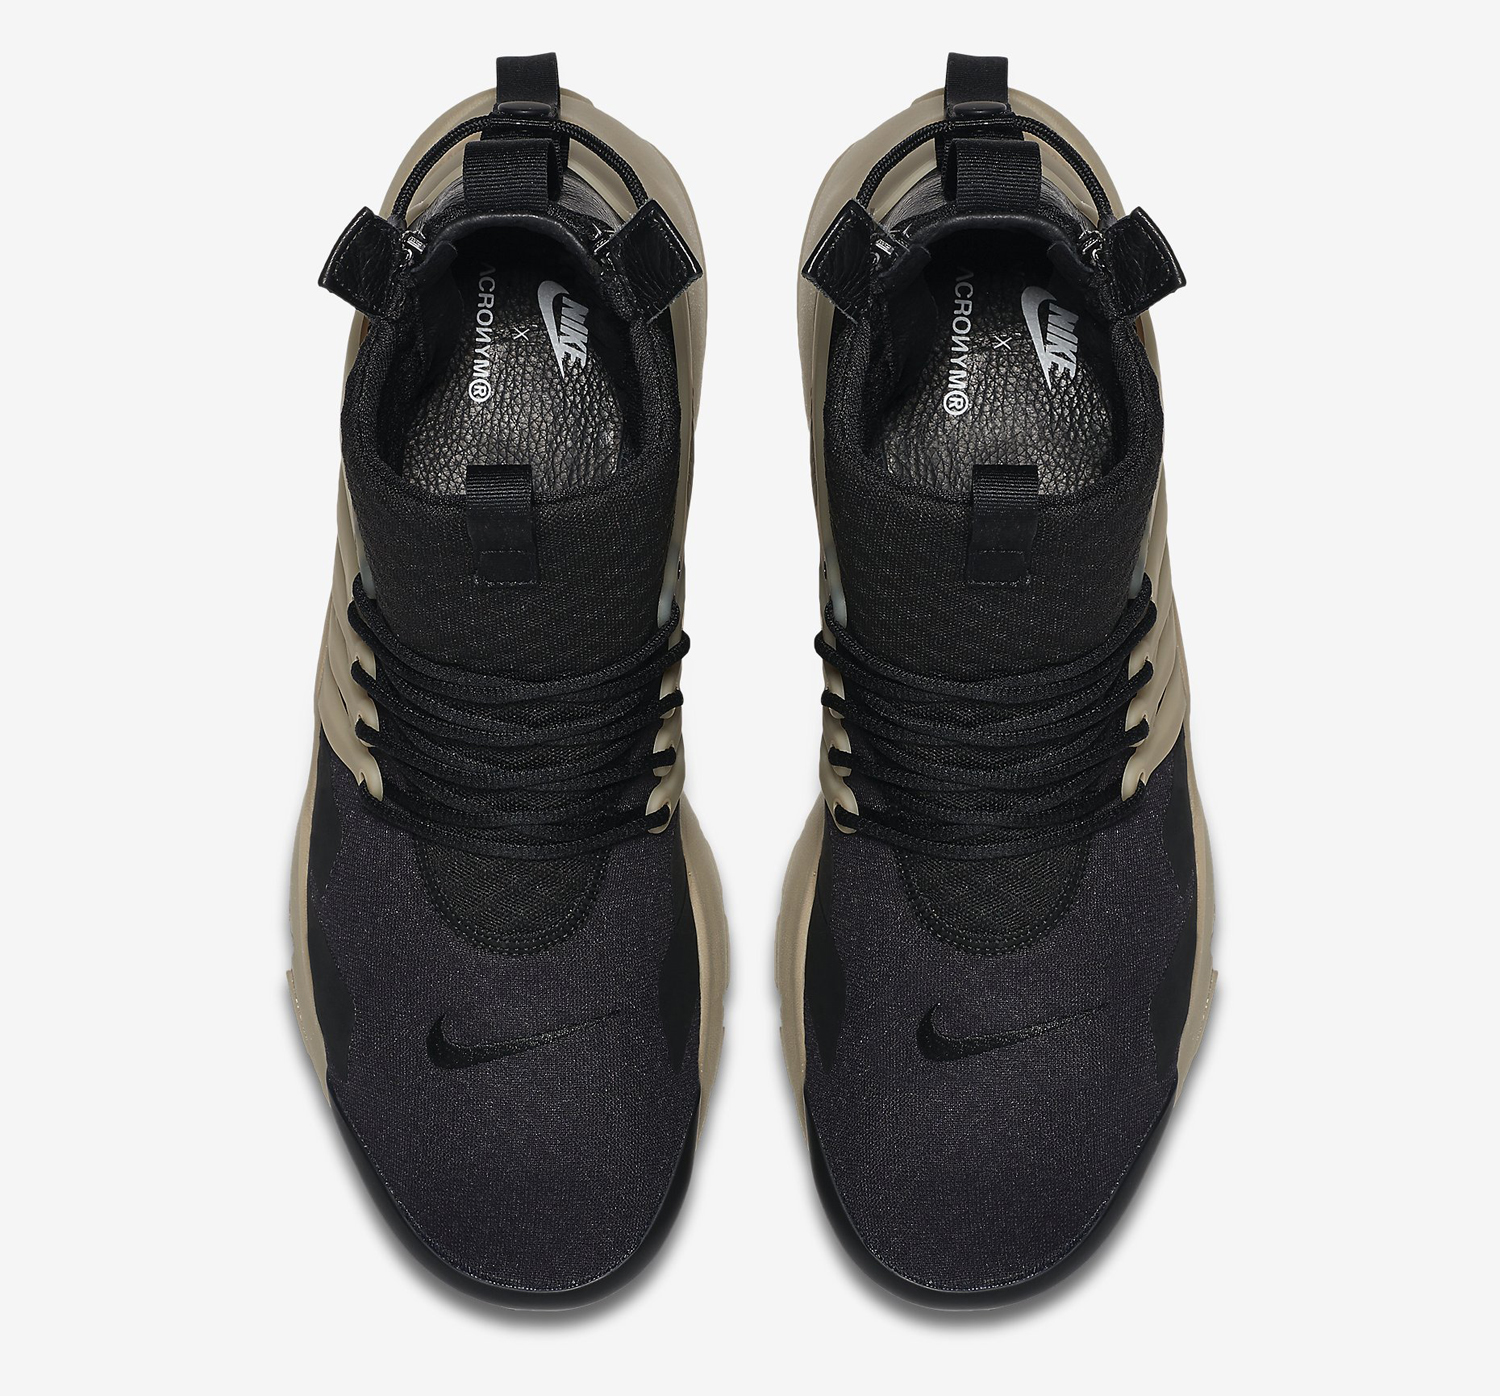 Acronym Nike Air Presto 844672-001 Top